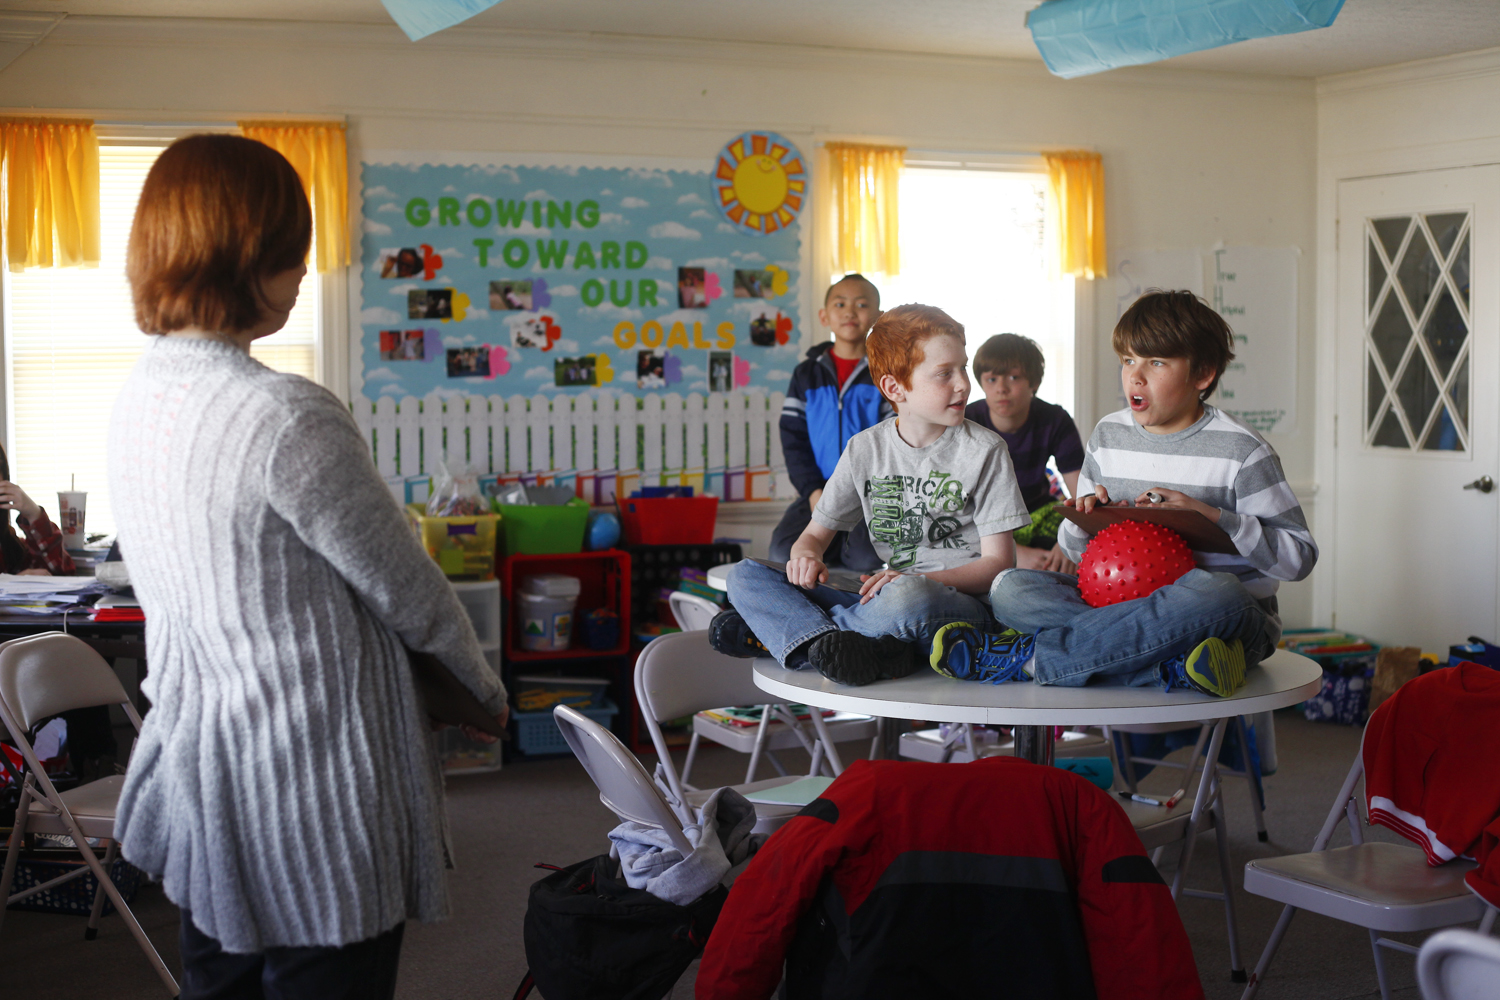 Caleb Von Busch, striped shirt, answers a math question during an end of the day game at Jubilee Academy.